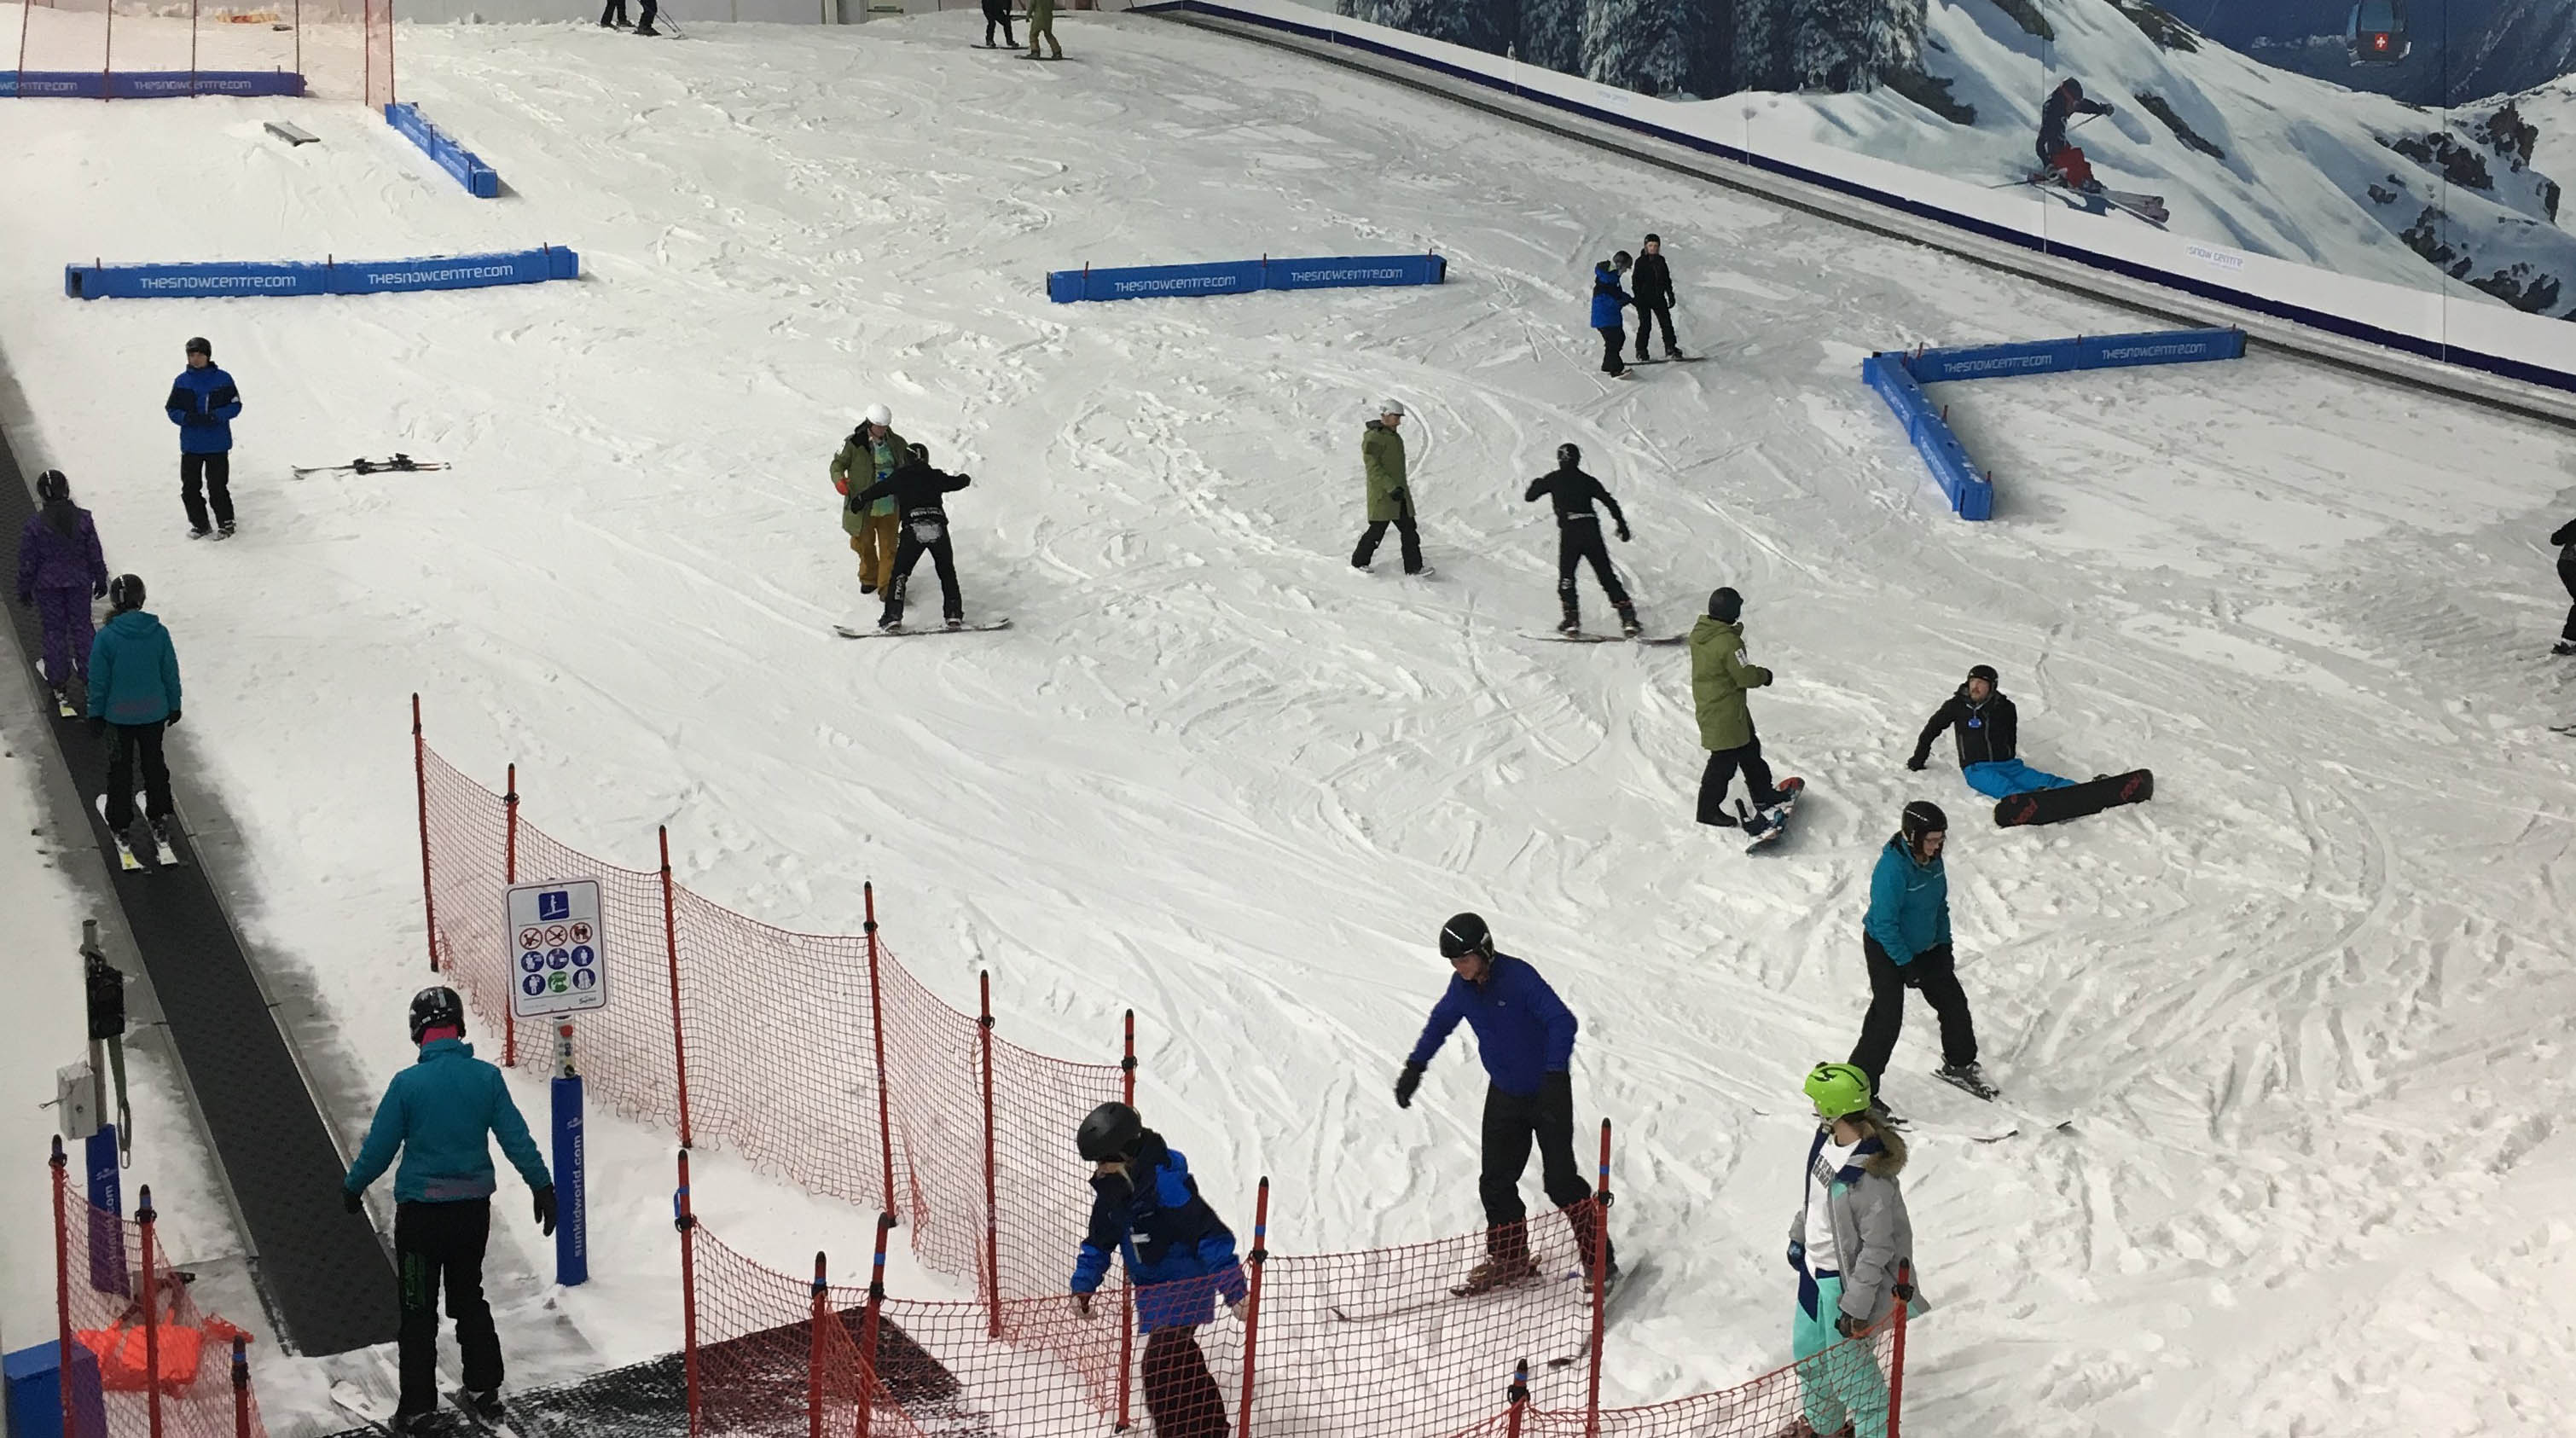 The Benefits of Snow Sports for WIS personnel